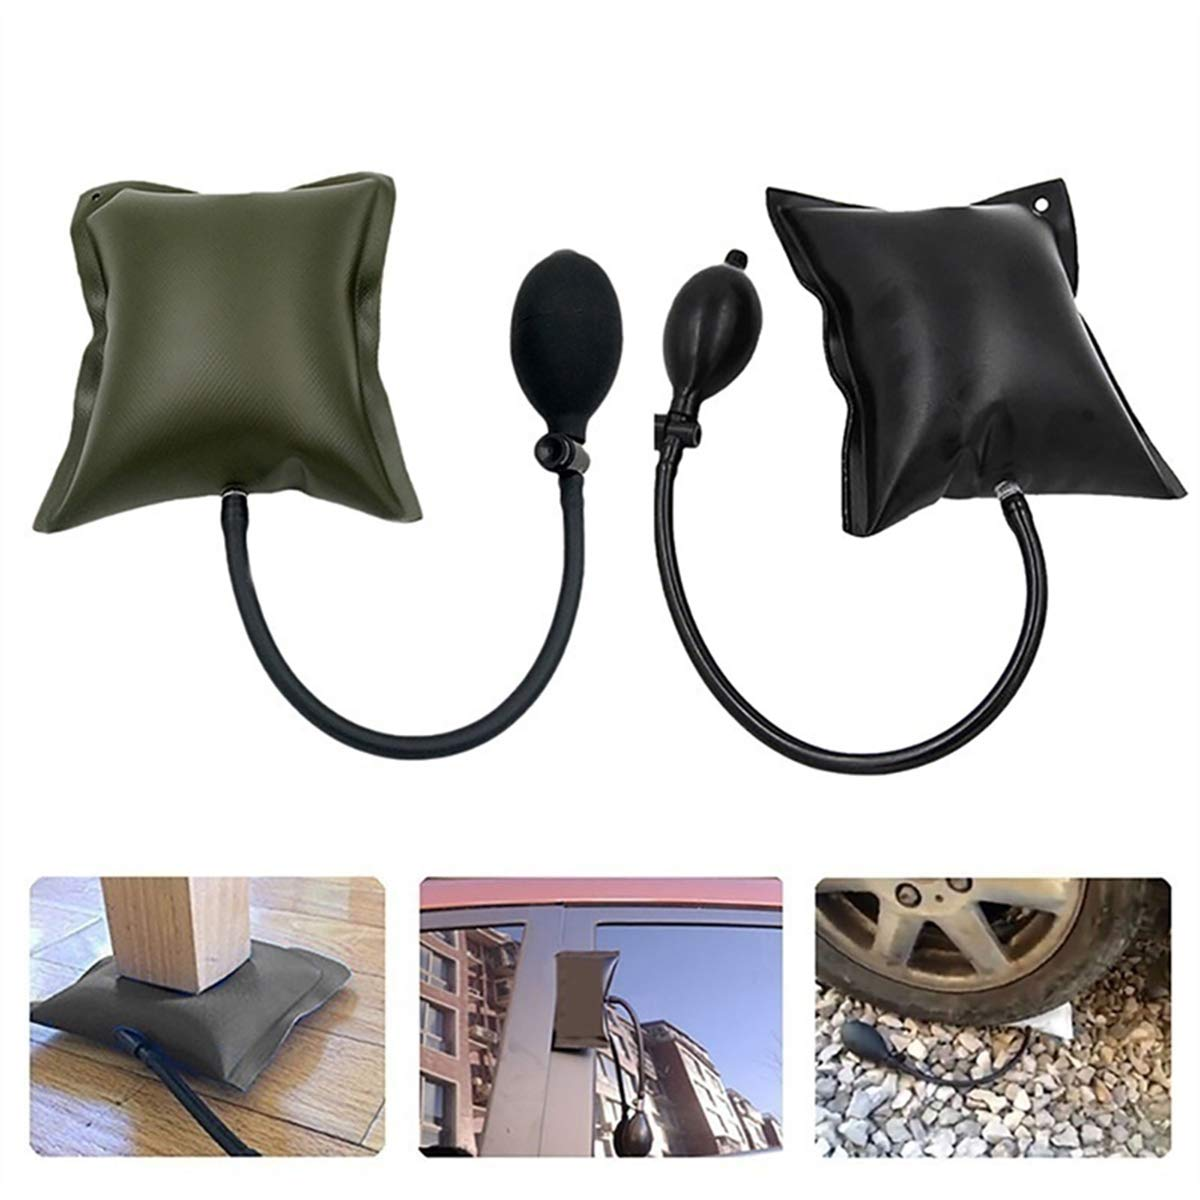 Winter Dong Auto Air Wedge Pump Alignment Tool Inflatable Shim Pry Bar Kits and Leveling Tool for Auto Repair Home Universal Use